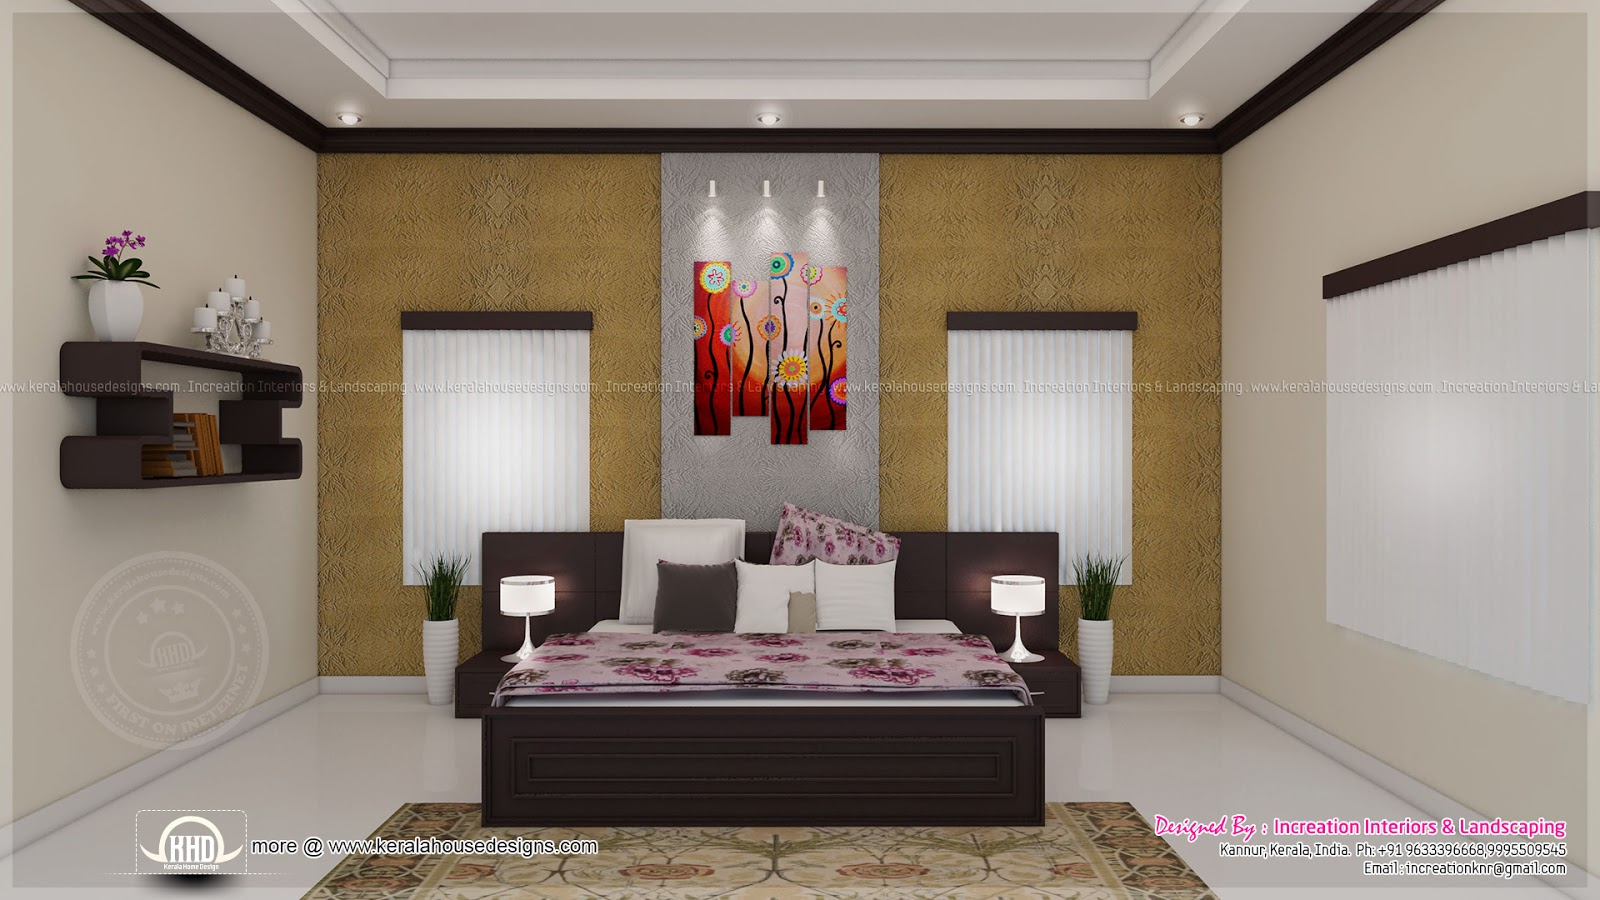 House interior ideas in 3d rendering kerala home design for Interior design pictures